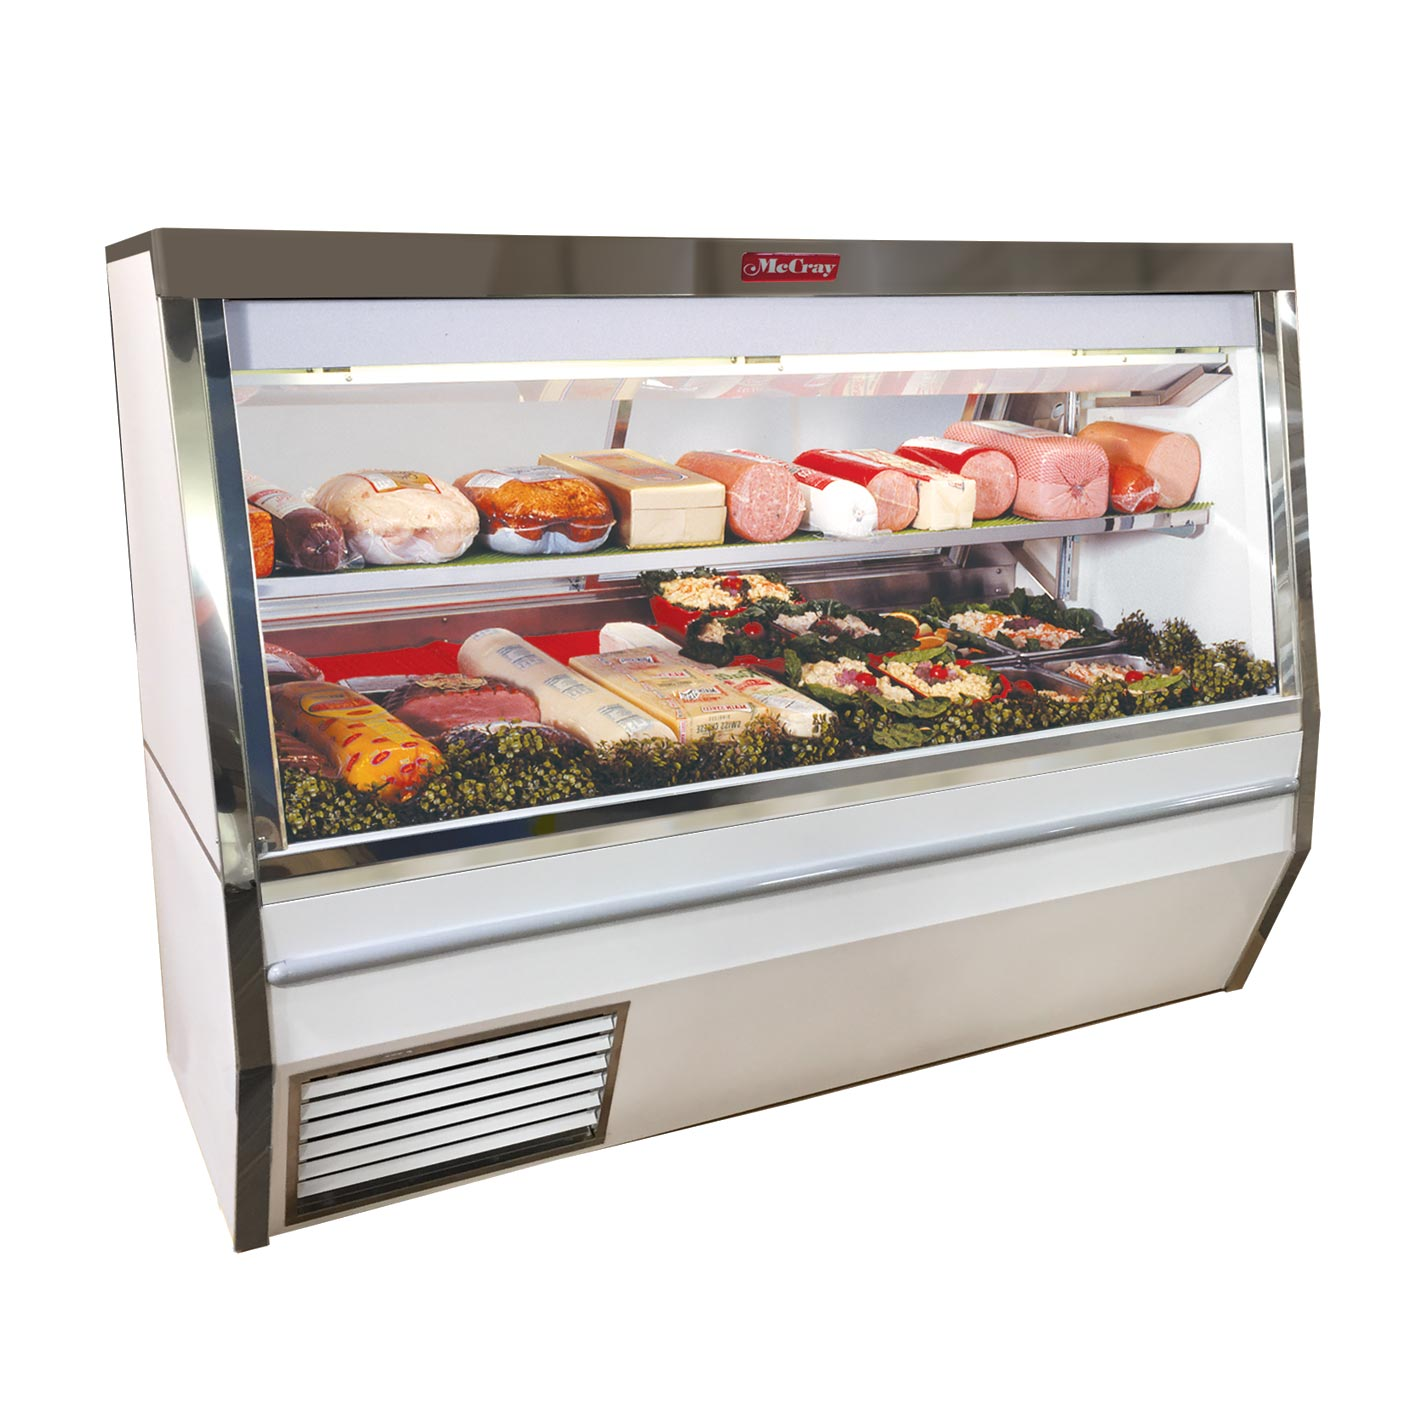 Howard-McCray SC-CDS34N-8-LS-LED display case, refrigerated deli